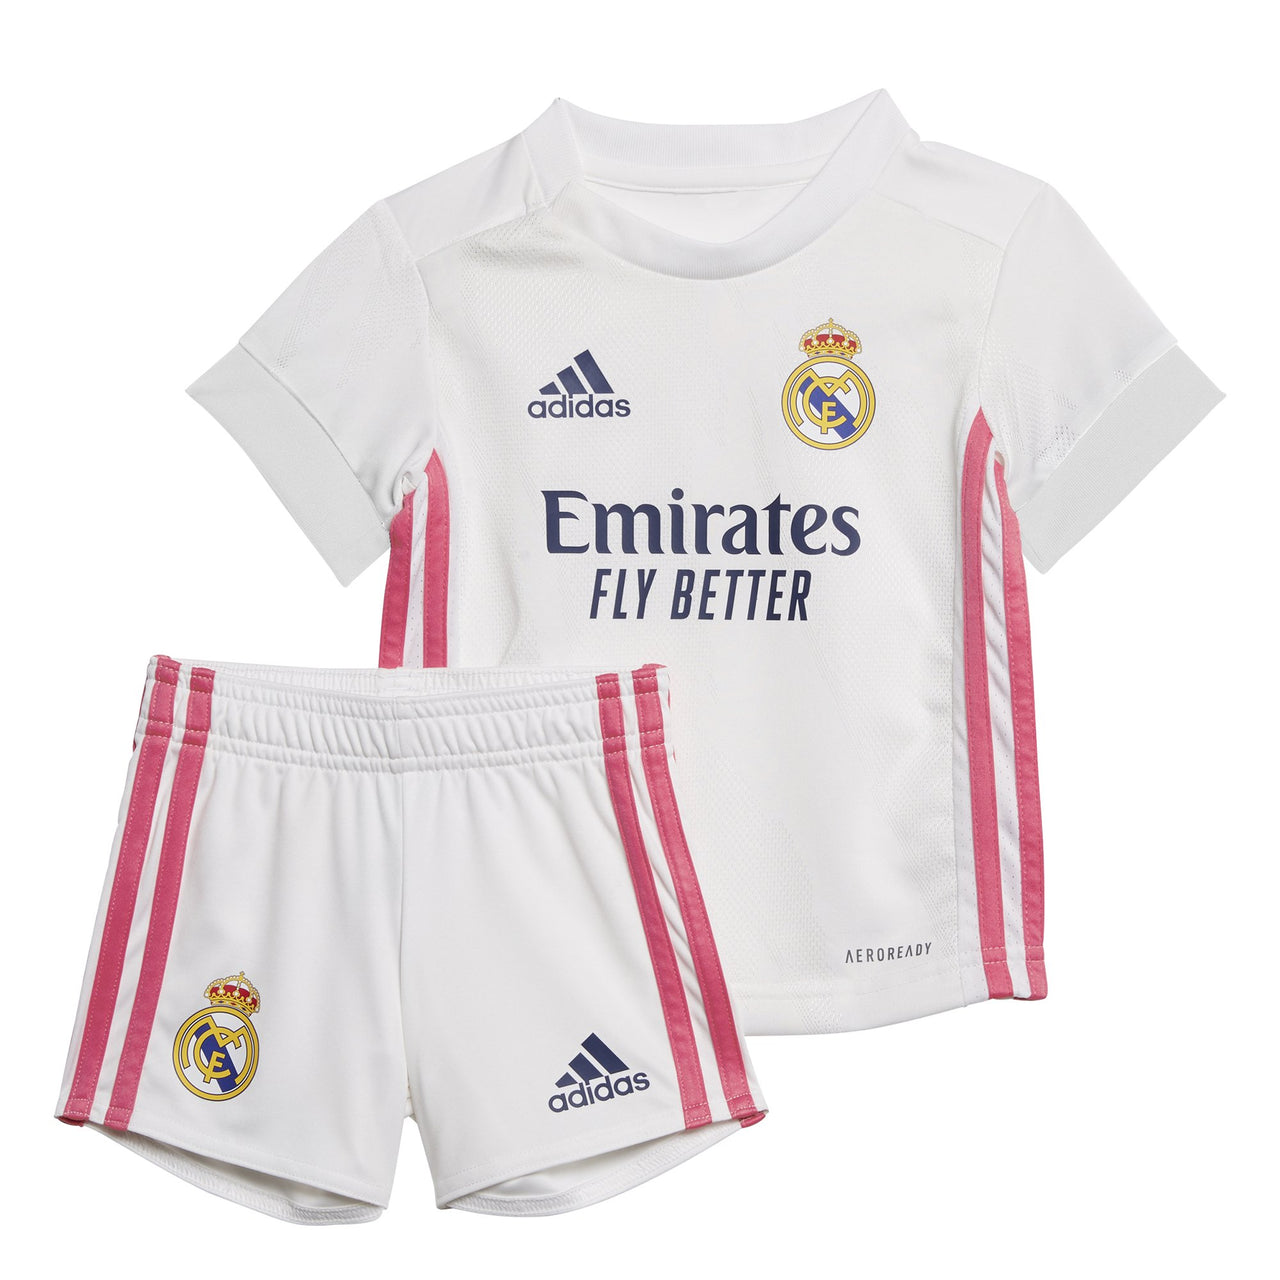 Youth Collection   Toddlers & Kids Apparel – Real Madrid CF   US Shop